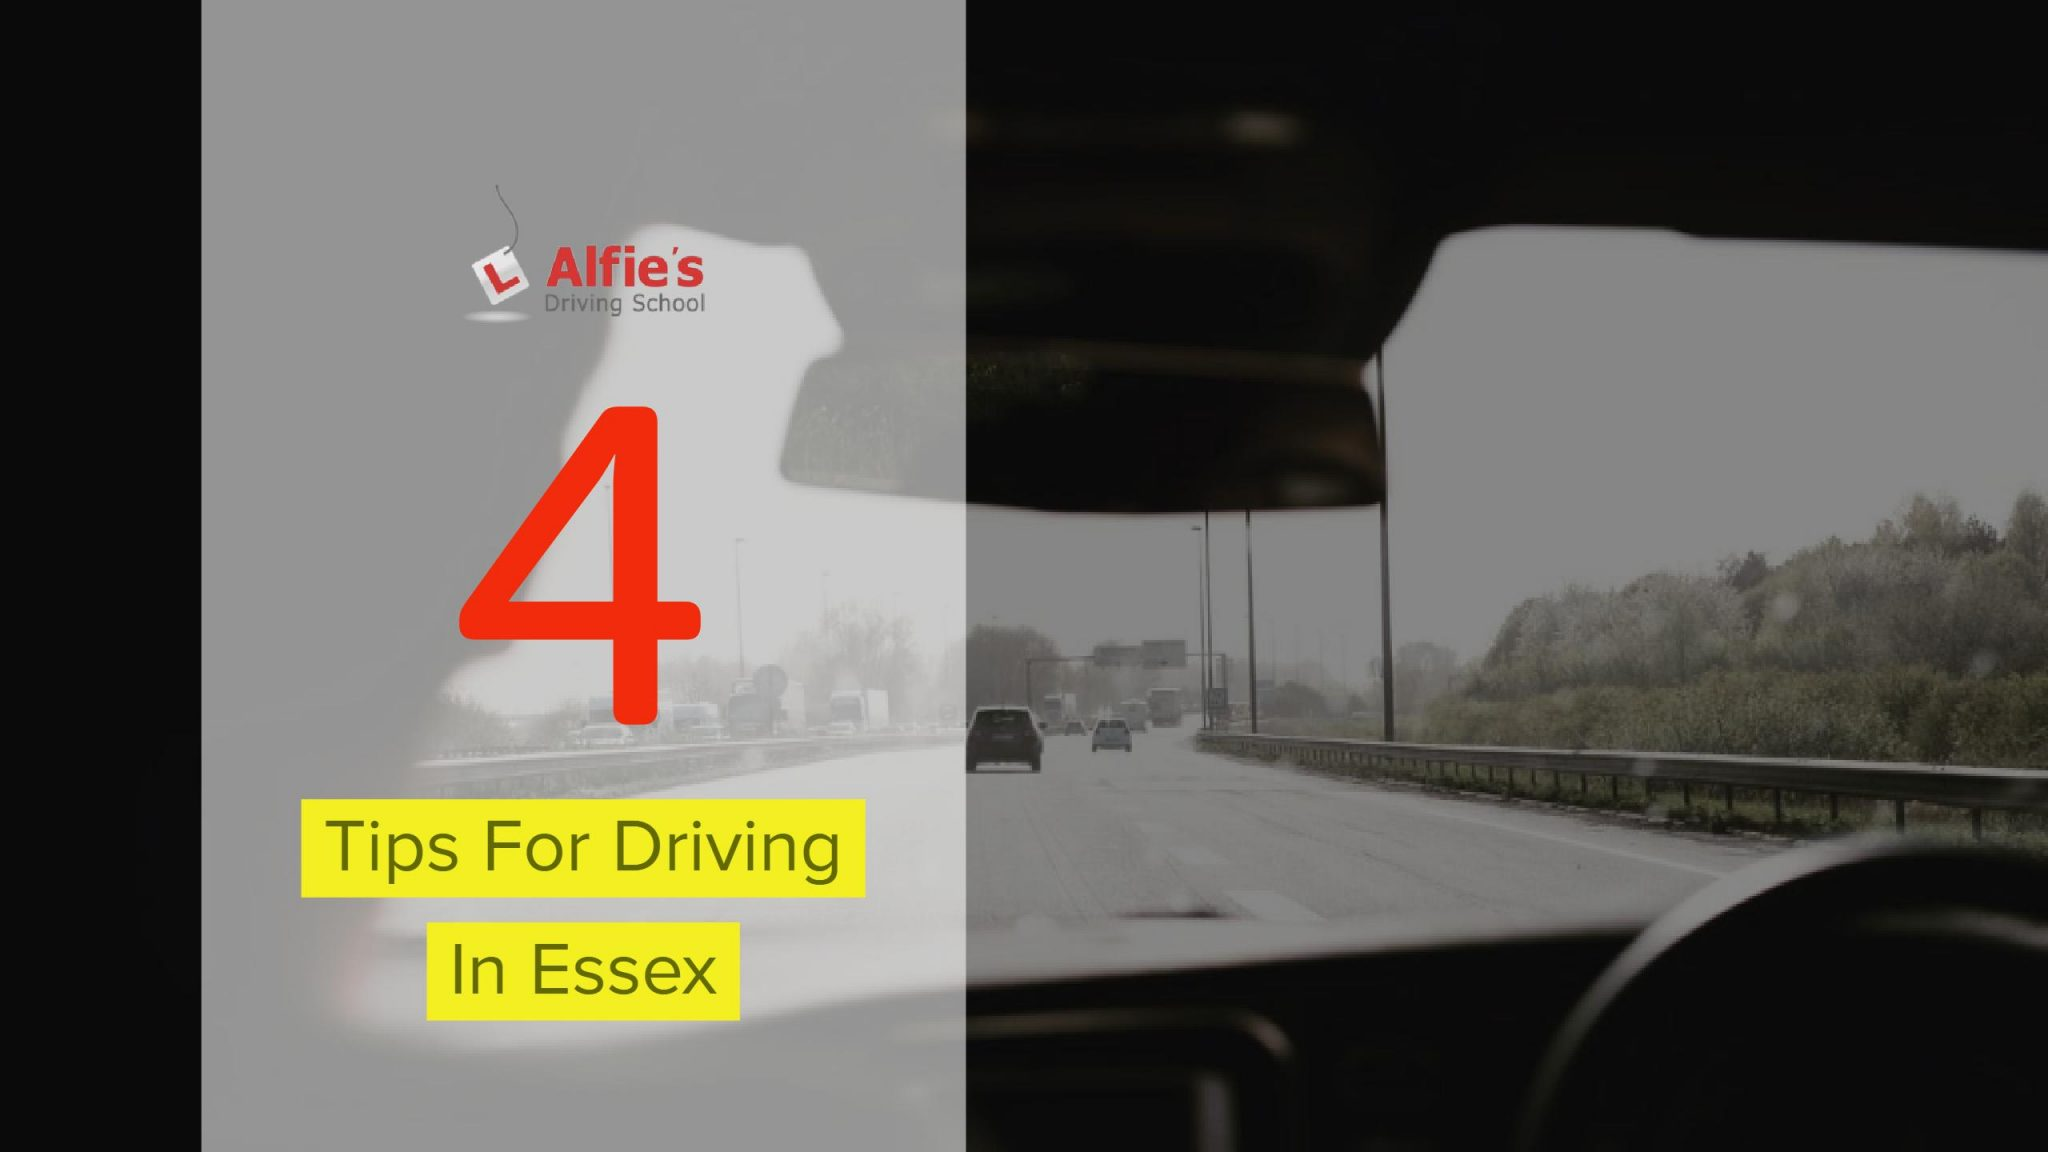 4 Tips For Driving In Essex